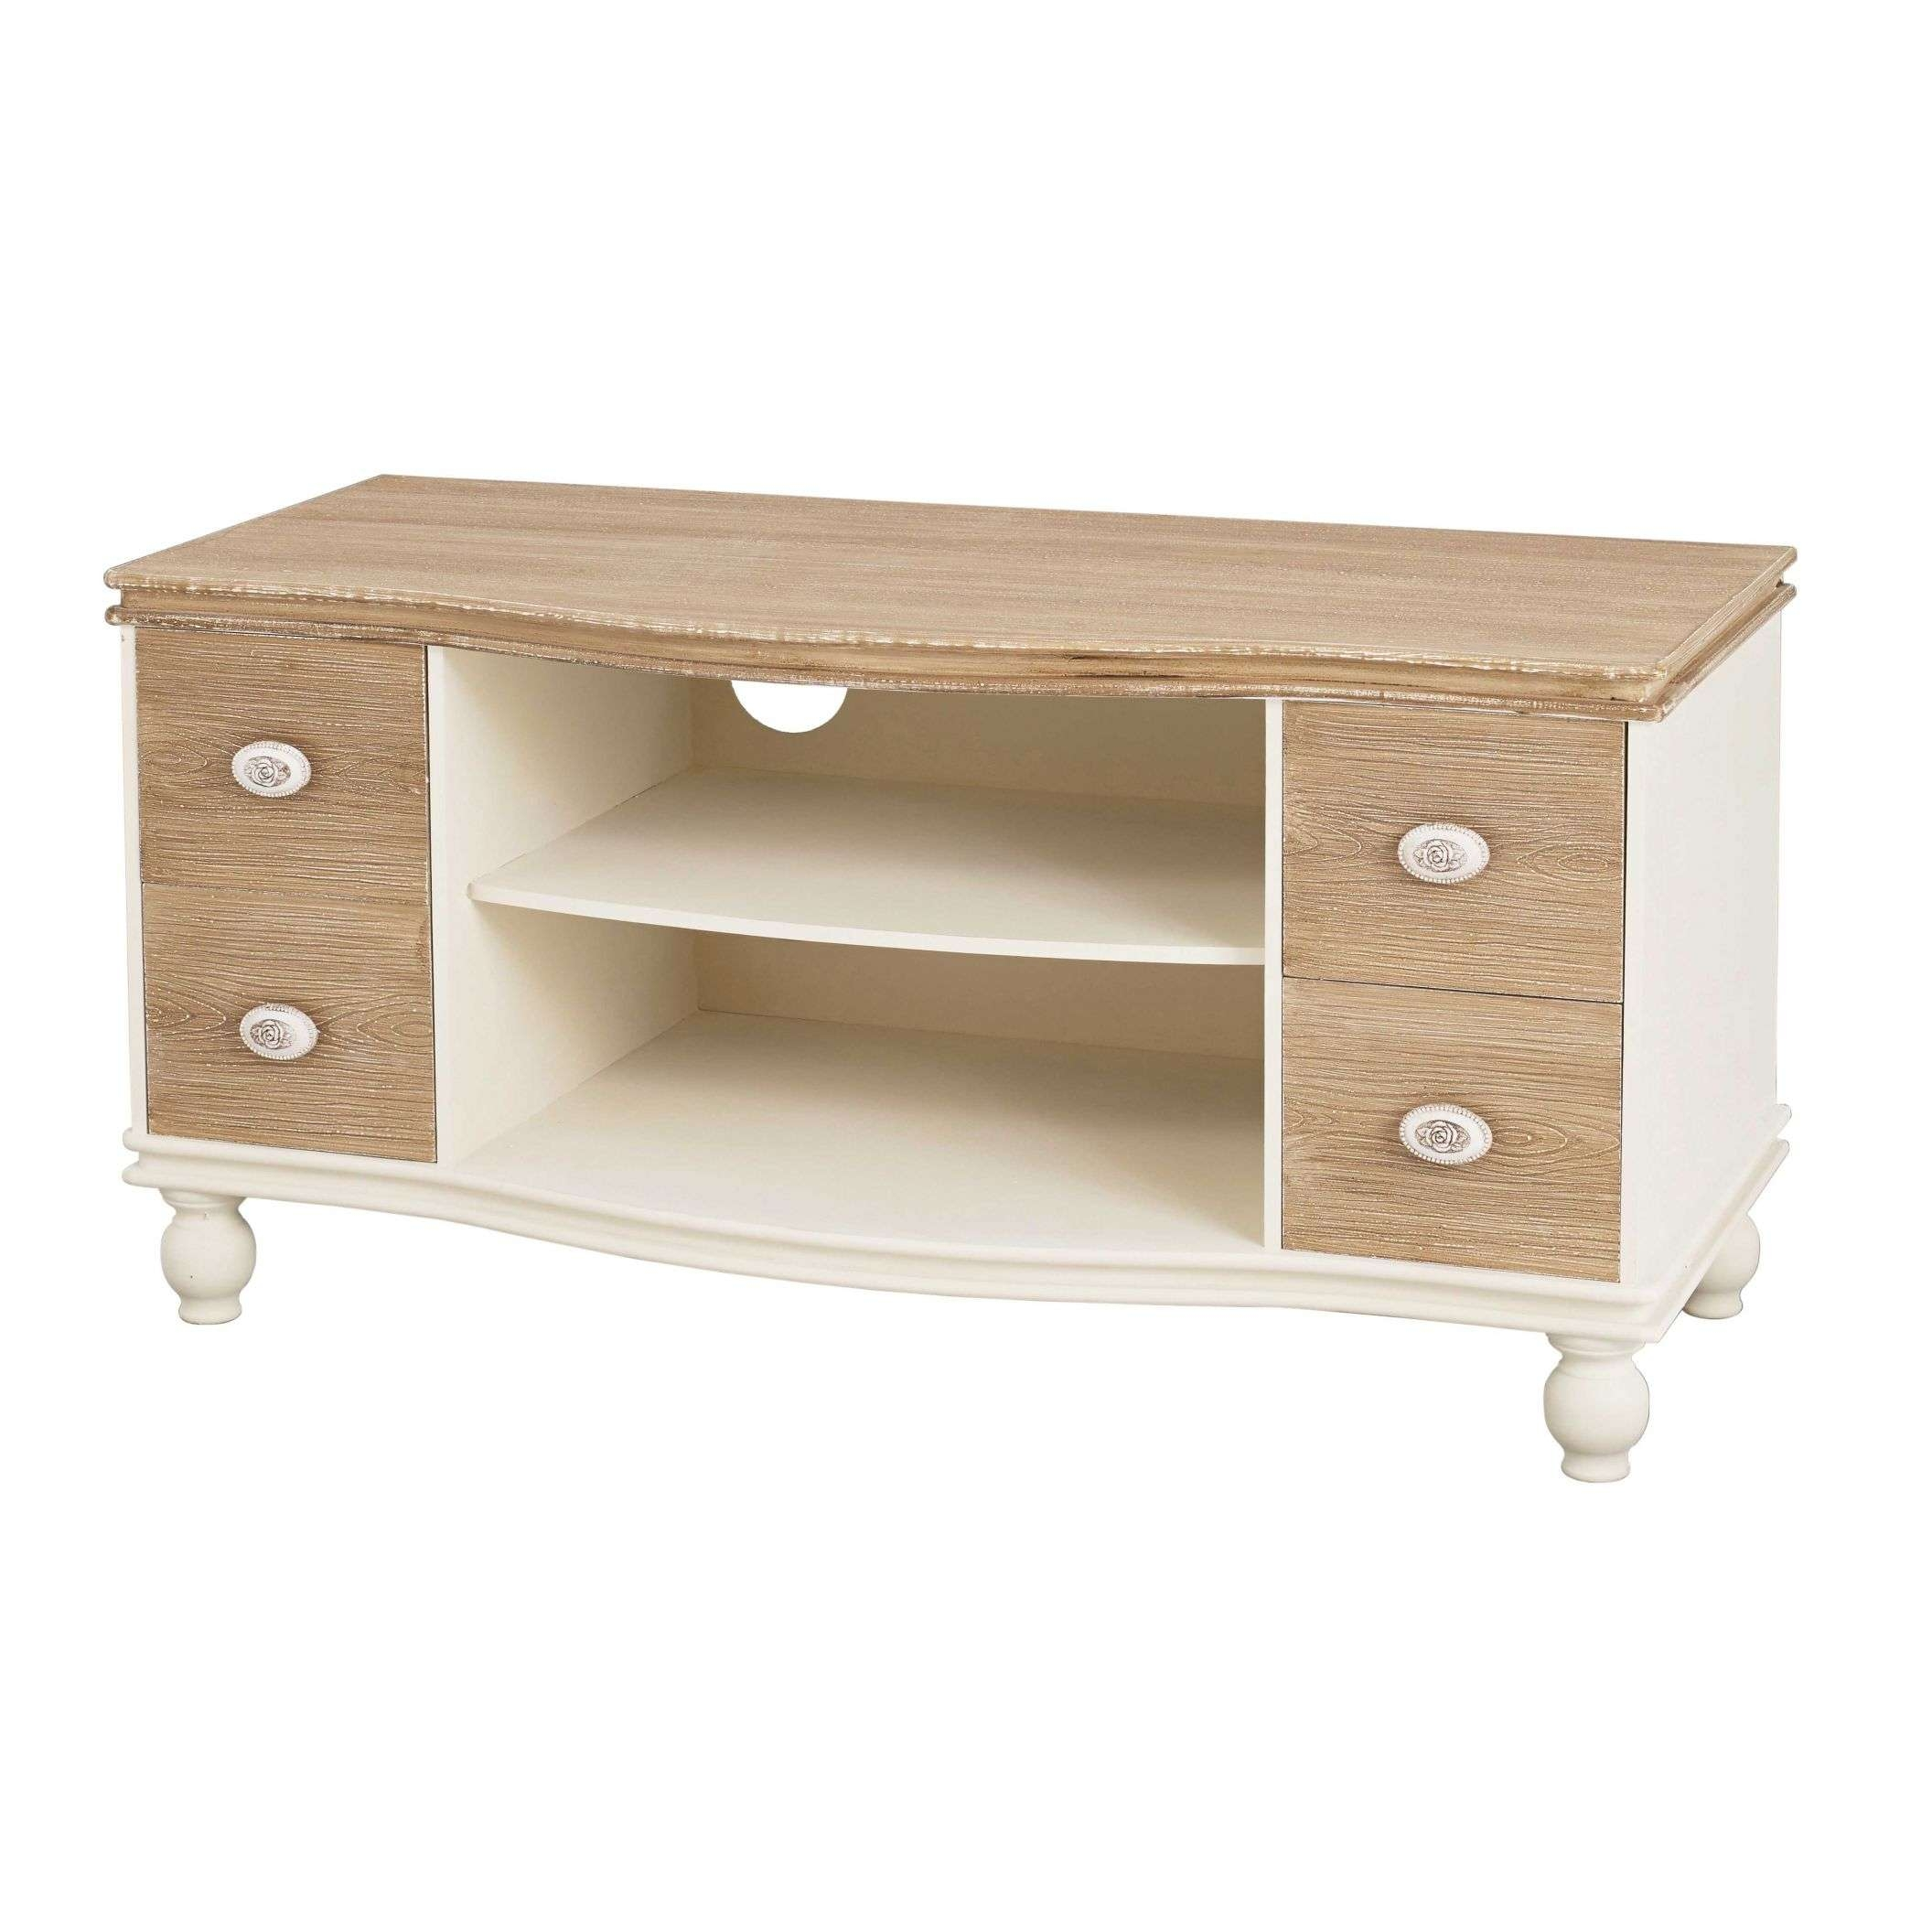 Juliette Shabby Chic Tv Unit | French Style Furniture Throughout Shabby Chic Tv Cabinets (Gallery 18 of 20)